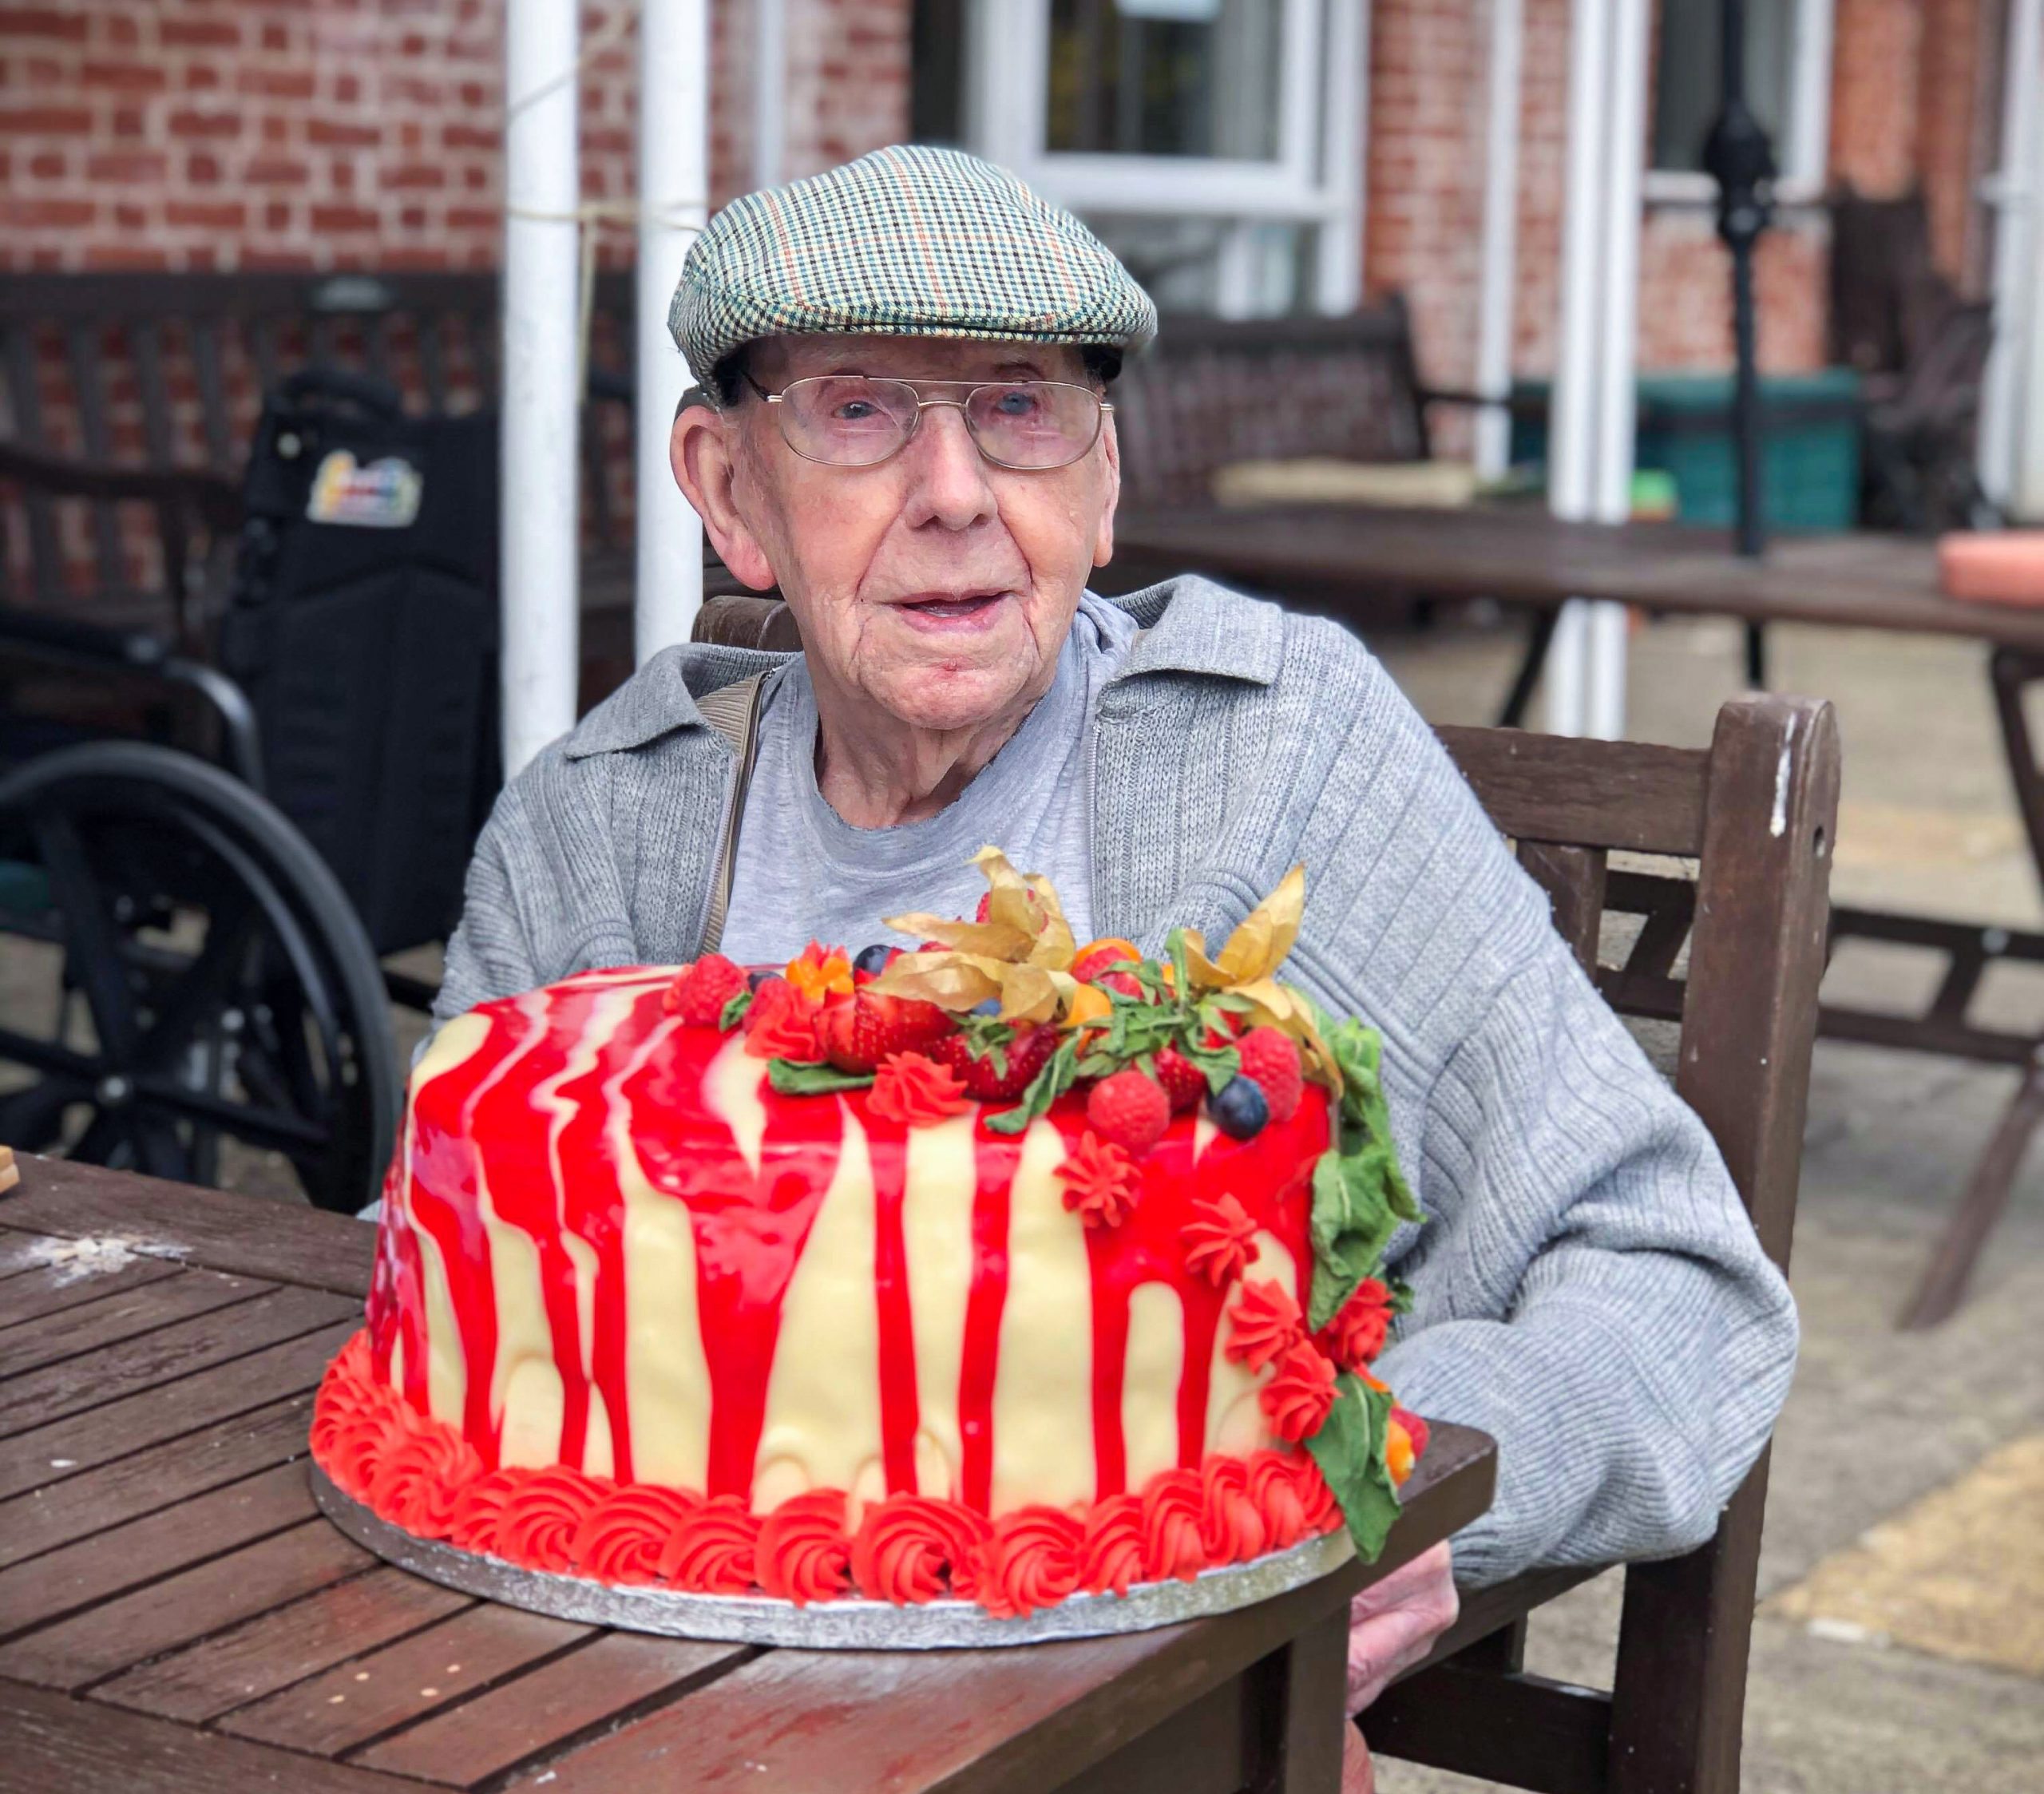 Bill with his Birthday cake at The Lawn care home